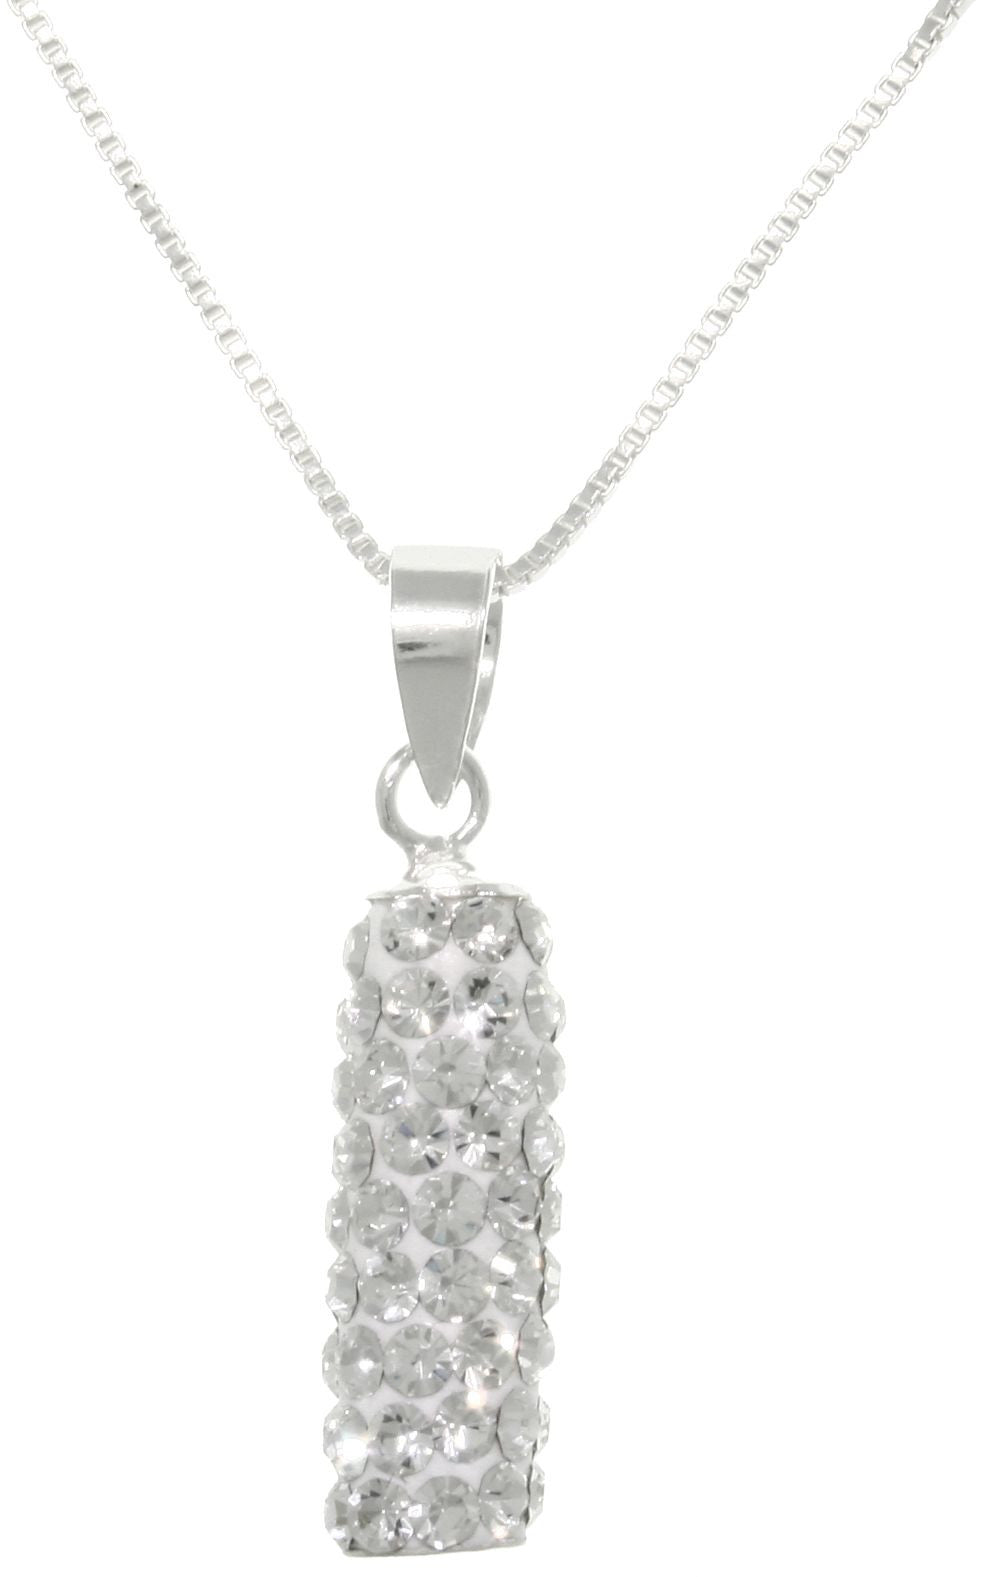 Jewelry Trends Sterling Silver Round Barrel Shaped Crystal Glass Sparkling Pendant on 18 Inch Necklace